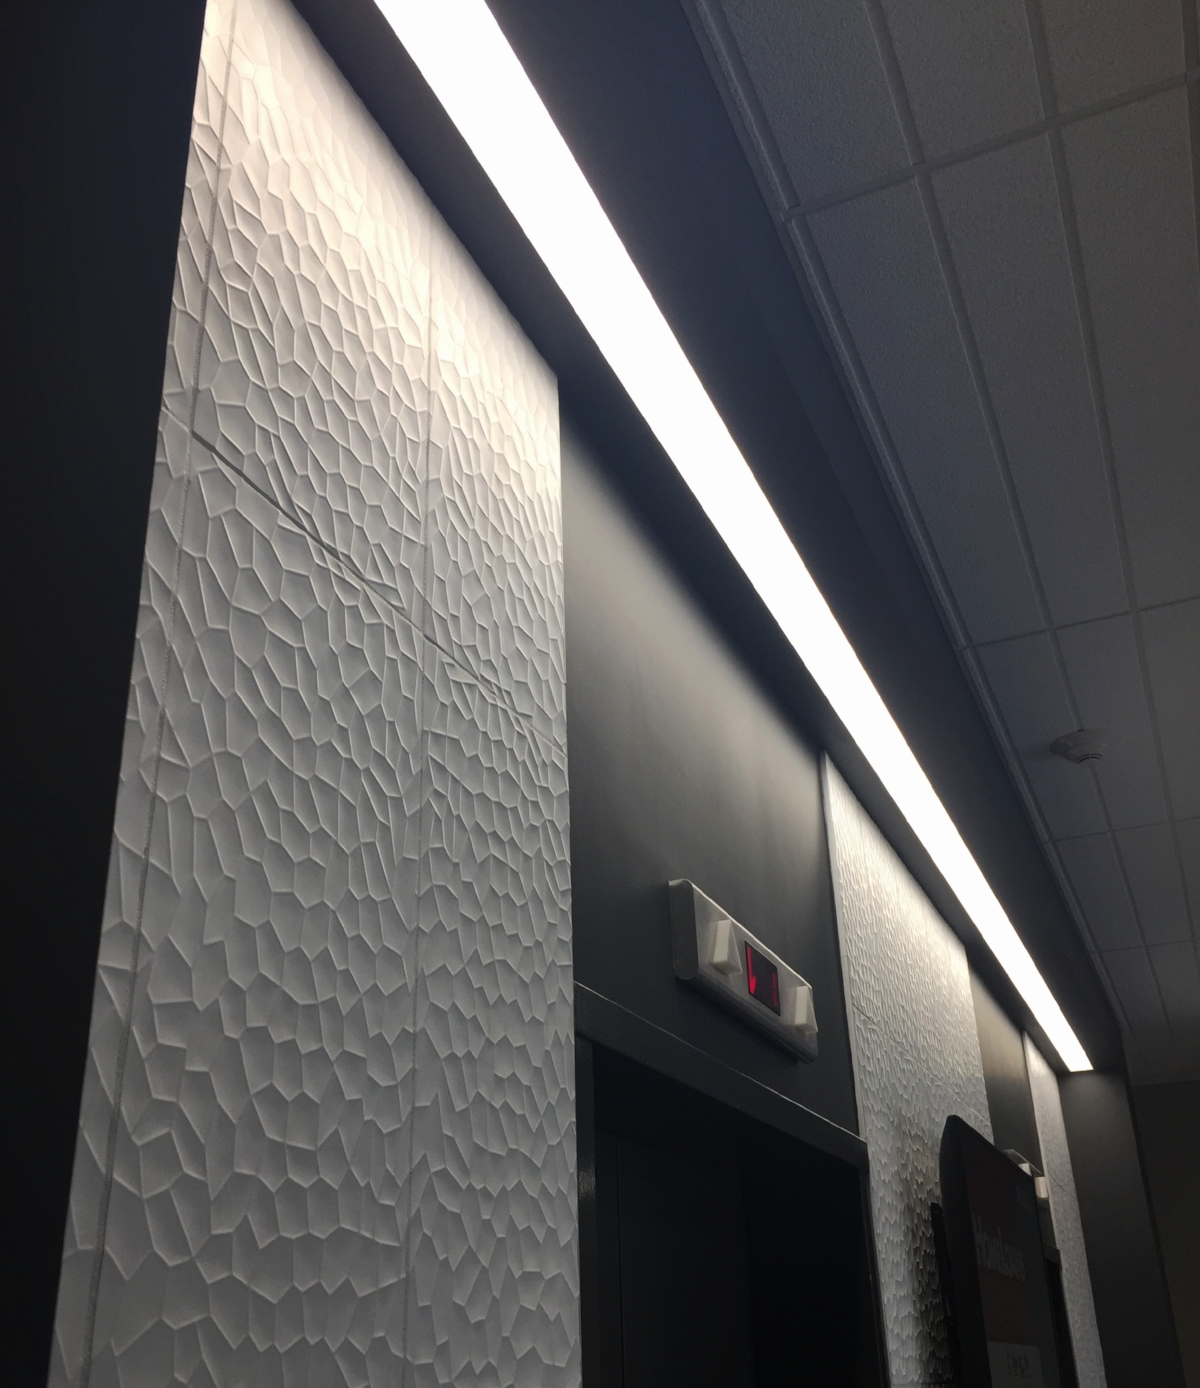 Elevator Lobby / Wall tile / Linear light fixture / Texture